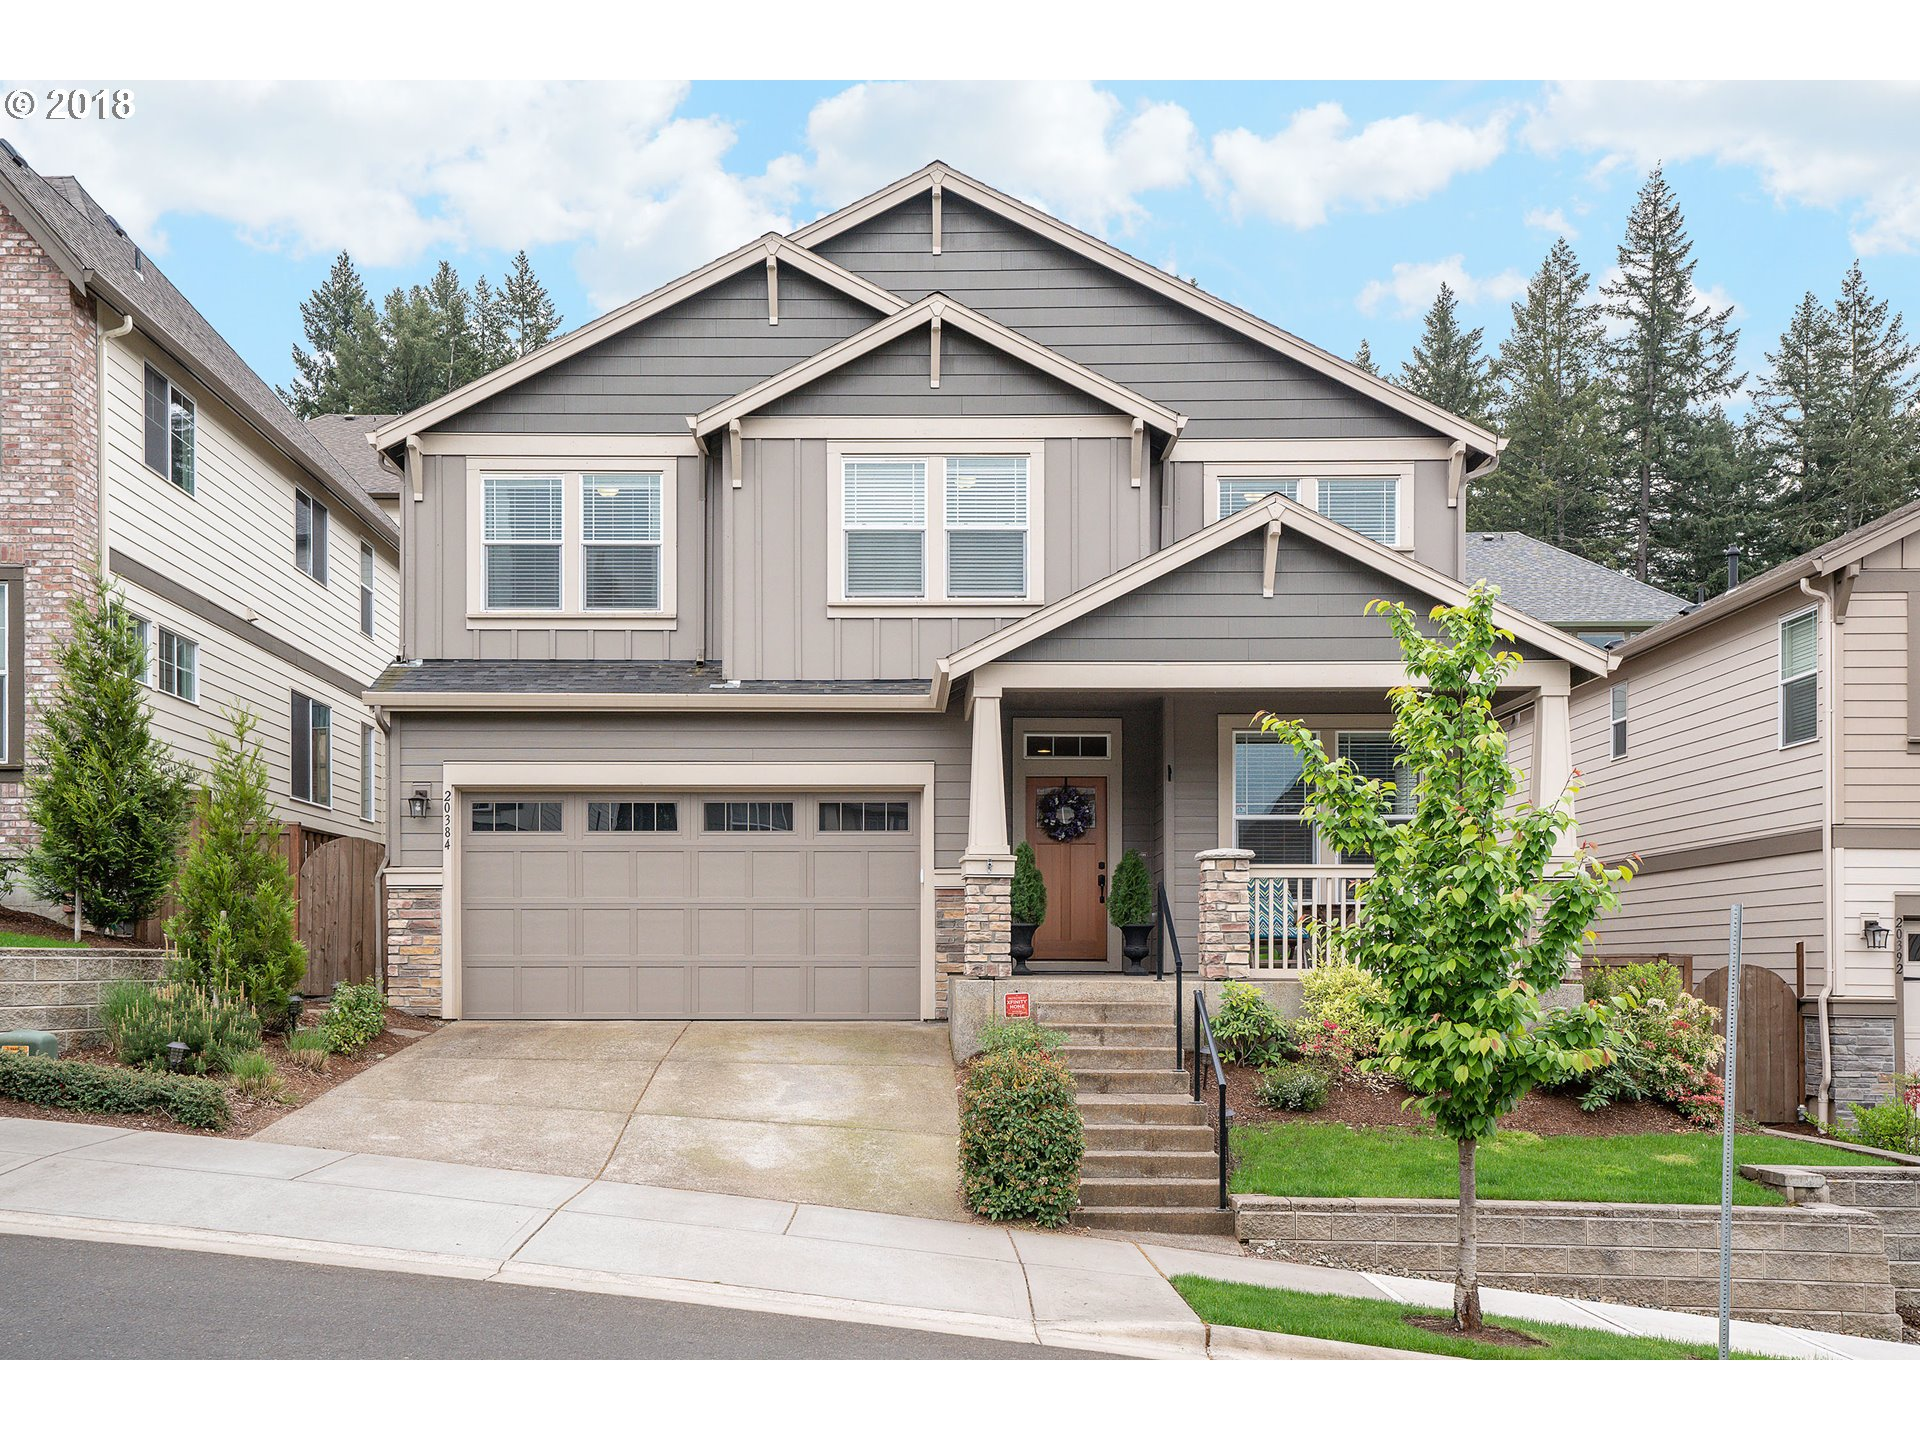 Meticulously maintained craftsman charmer in the quaint Twin Creeks Neighborhood. Perched high on Cooper Mtn, ideally located adjacent to the Jenkins Estate, the Cooper Mtn Nature Park & Cooper Mtn Vineyards. The location offers a plethora of activities at your doorstep. The use of space is exquisite as one space flows to the next perfectly. Amenities include high ceilings, contemporary lighting, granite, hardwoods and so much more.